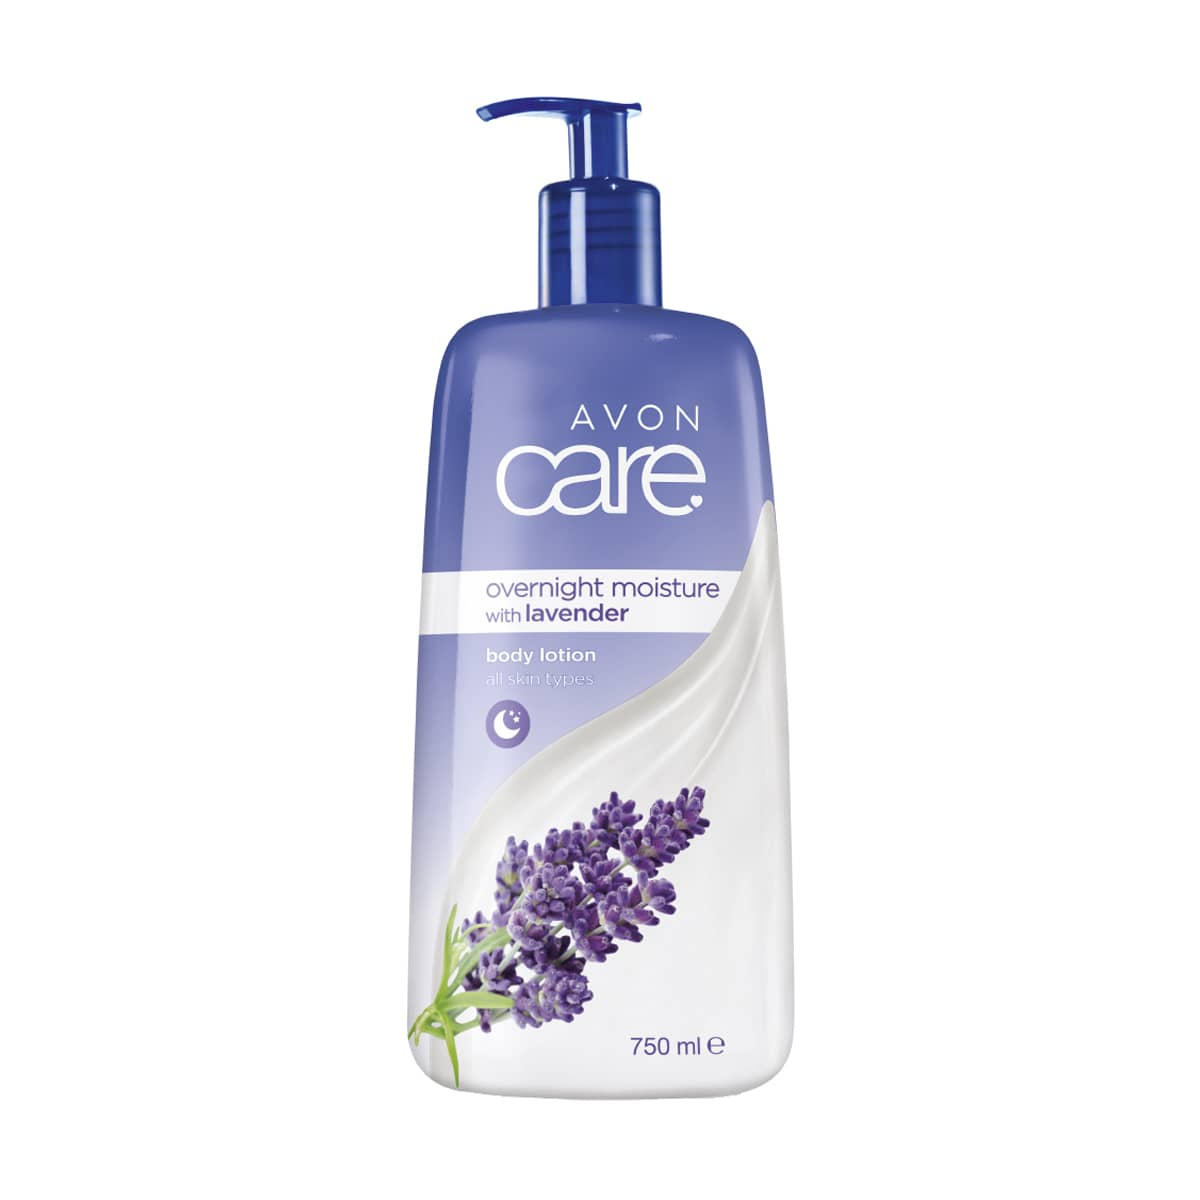 Avon Care Body Lotion 750ml Overnight Moisturising with Lavender 1374136